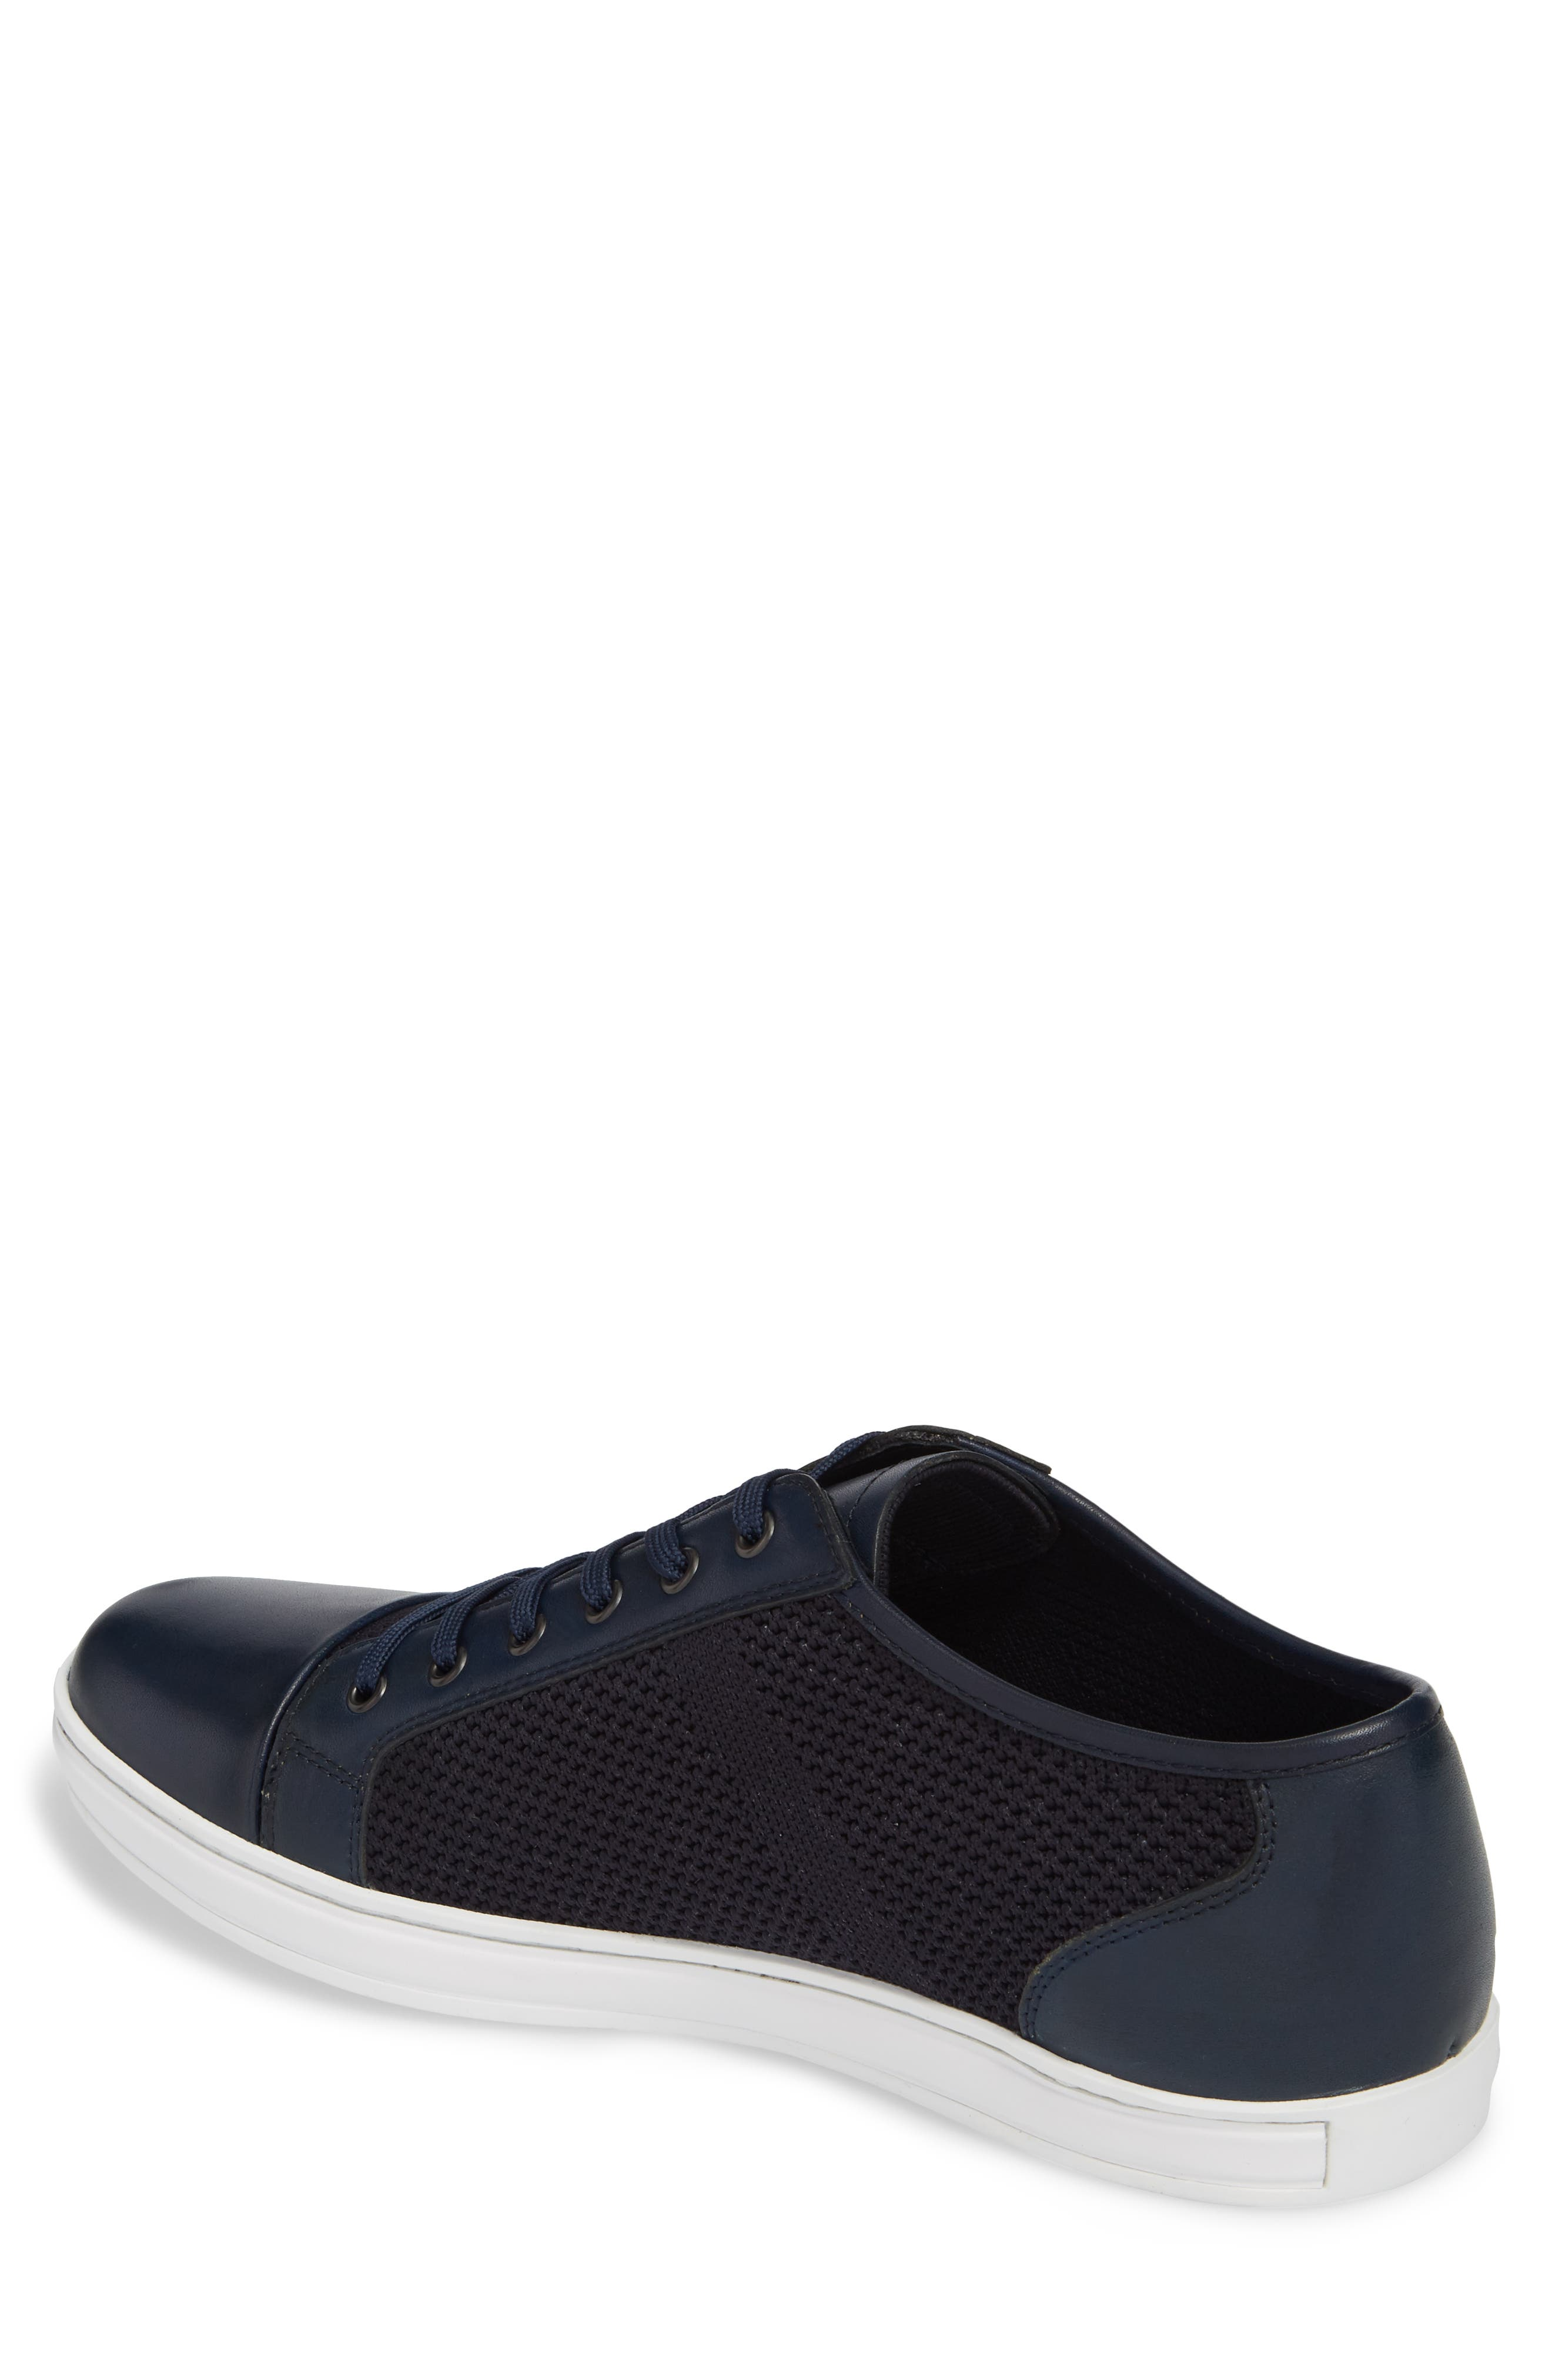 Knit Low Top Sneaker,                             Alternate thumbnail 2, color,                             Navy Leather